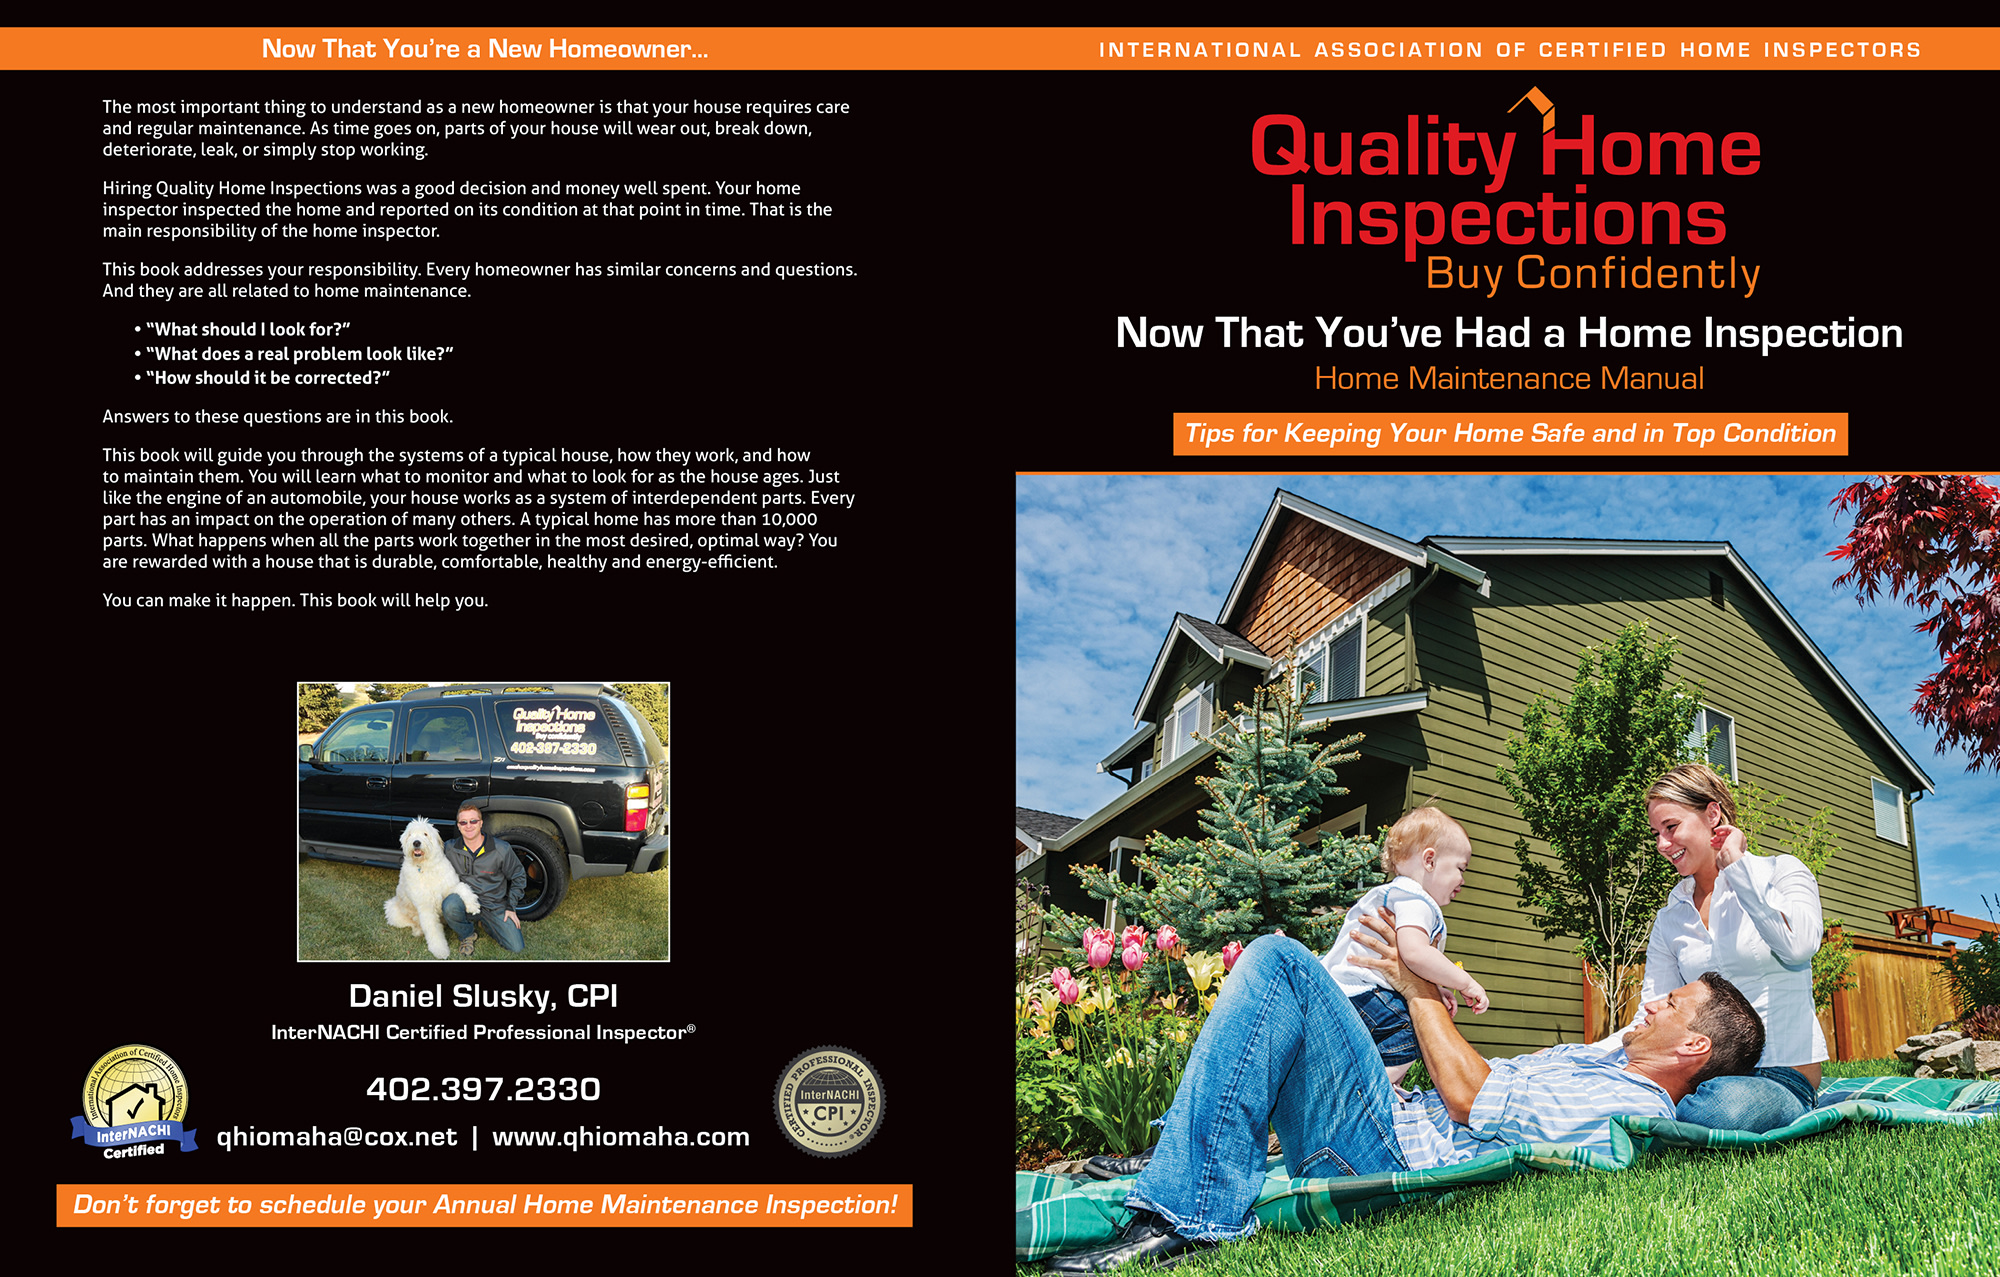 Custom Home Maintenance Book for Quality Home Inspections.